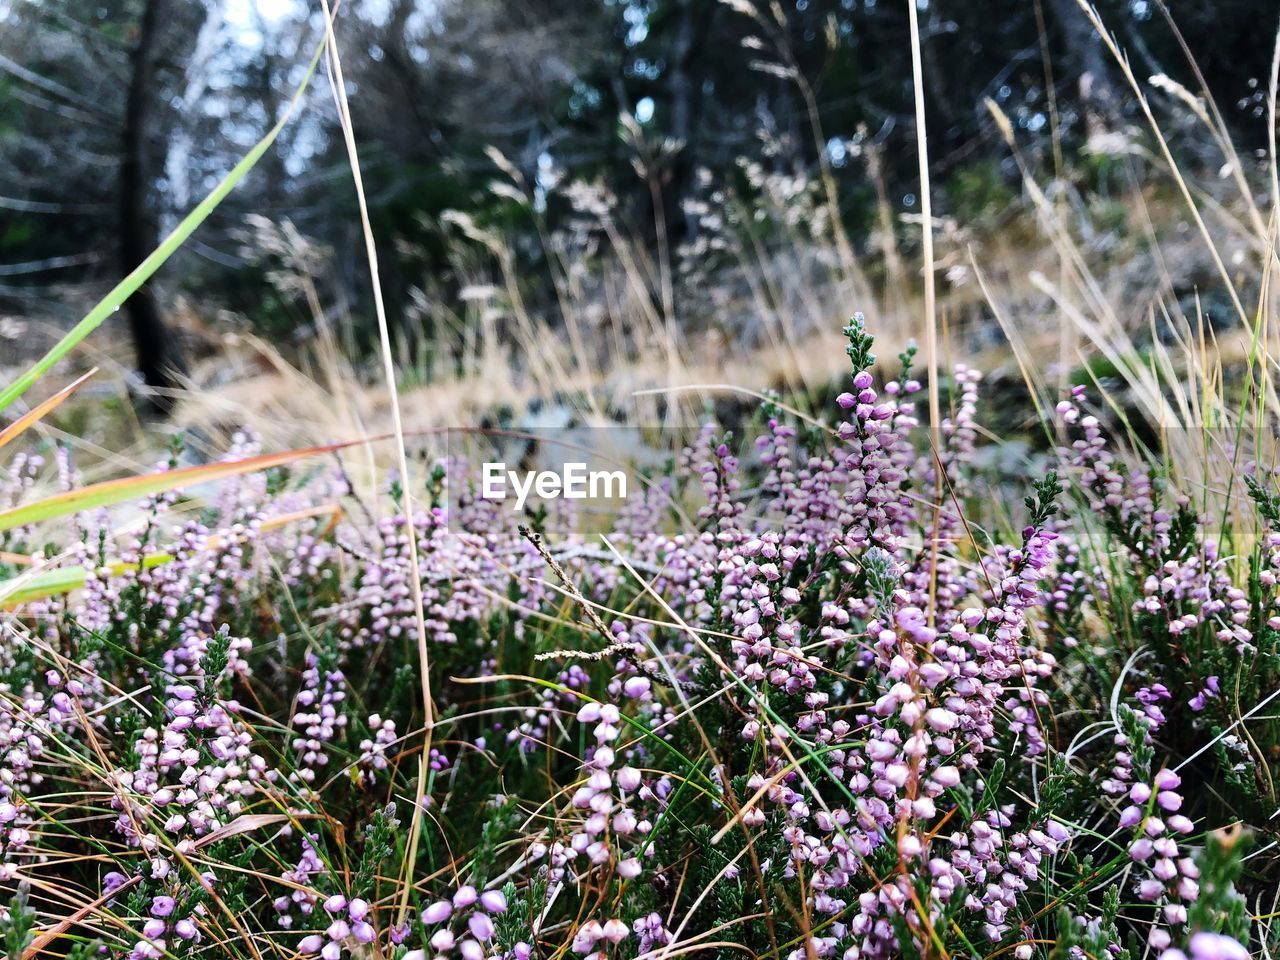 flower, plant, growth, flowering plant, land, fragility, field, beauty in nature, vulnerability, purple, freshness, day, nature, selective focus, focus on foreground, no people, close-up, tranquility, outdoors, lavender